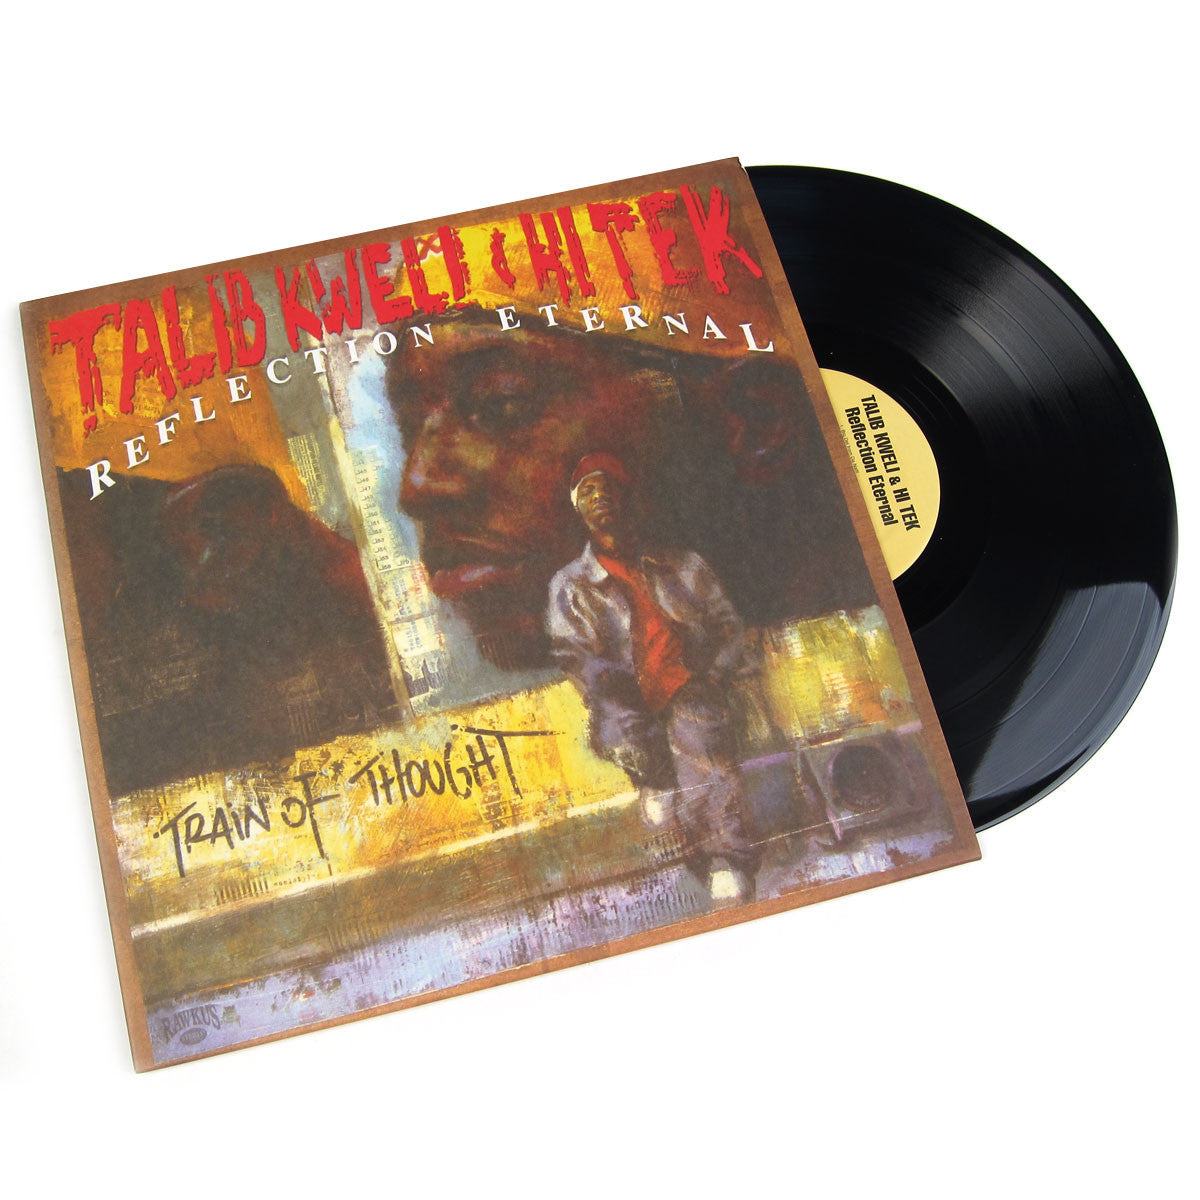 Reflection Eternal: Train Of Thought (Talib Kweli, Hi Tek) Vinyl 2LP